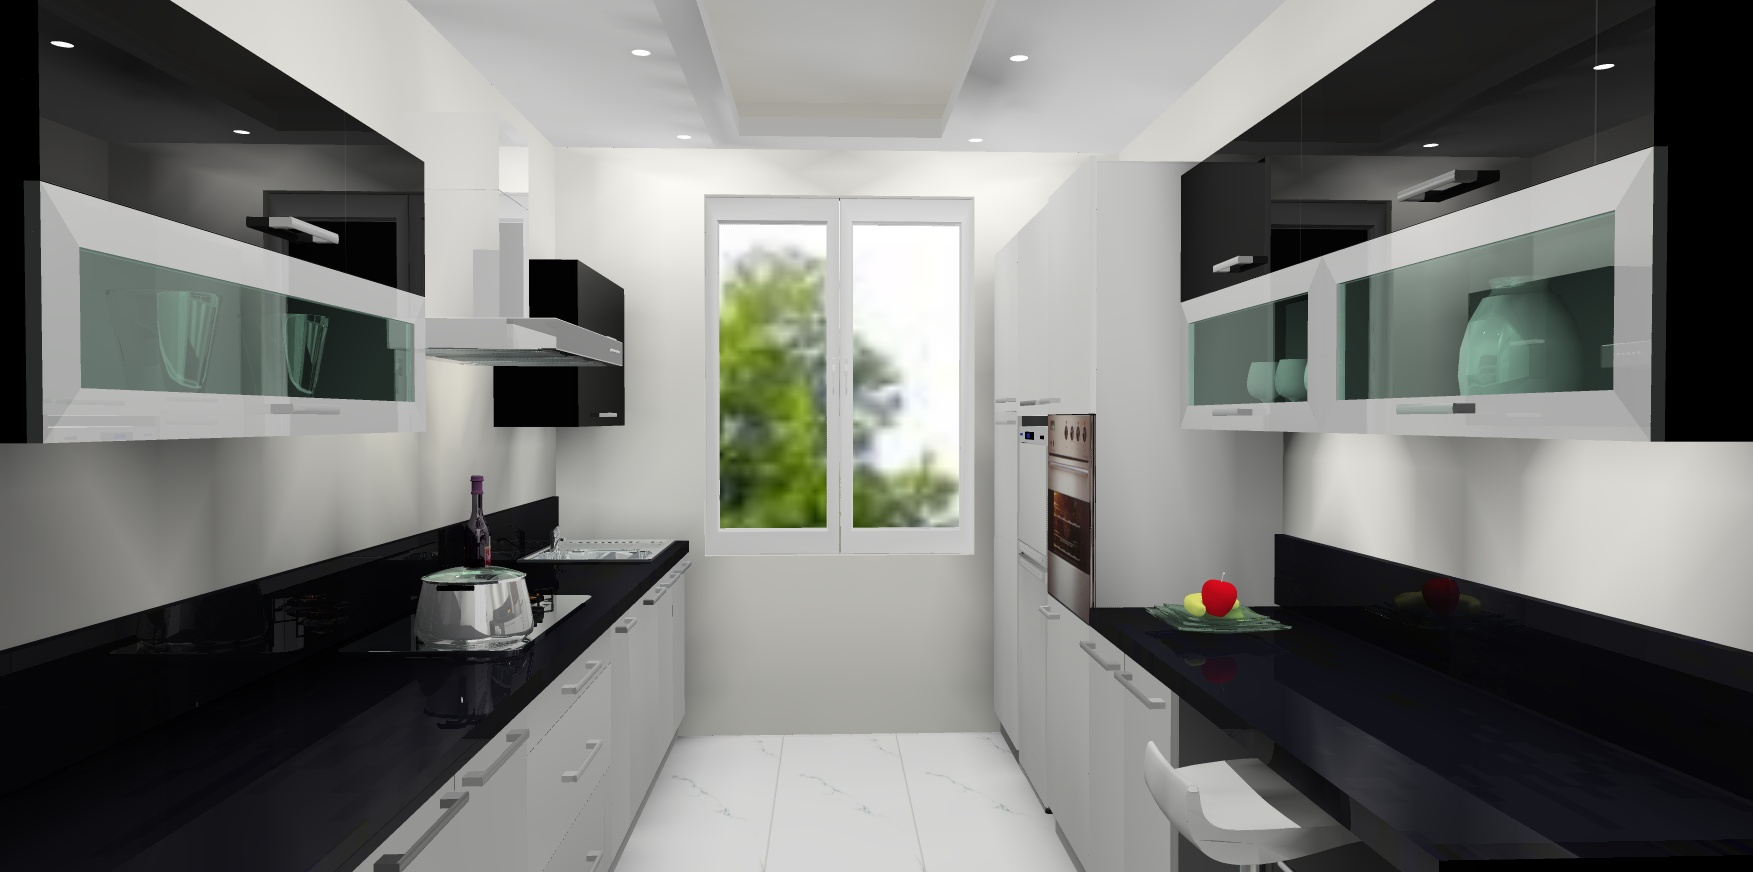 Modular kitchens in hyderabad bangalore and chennai - Design of modular kitchen cabinets ...